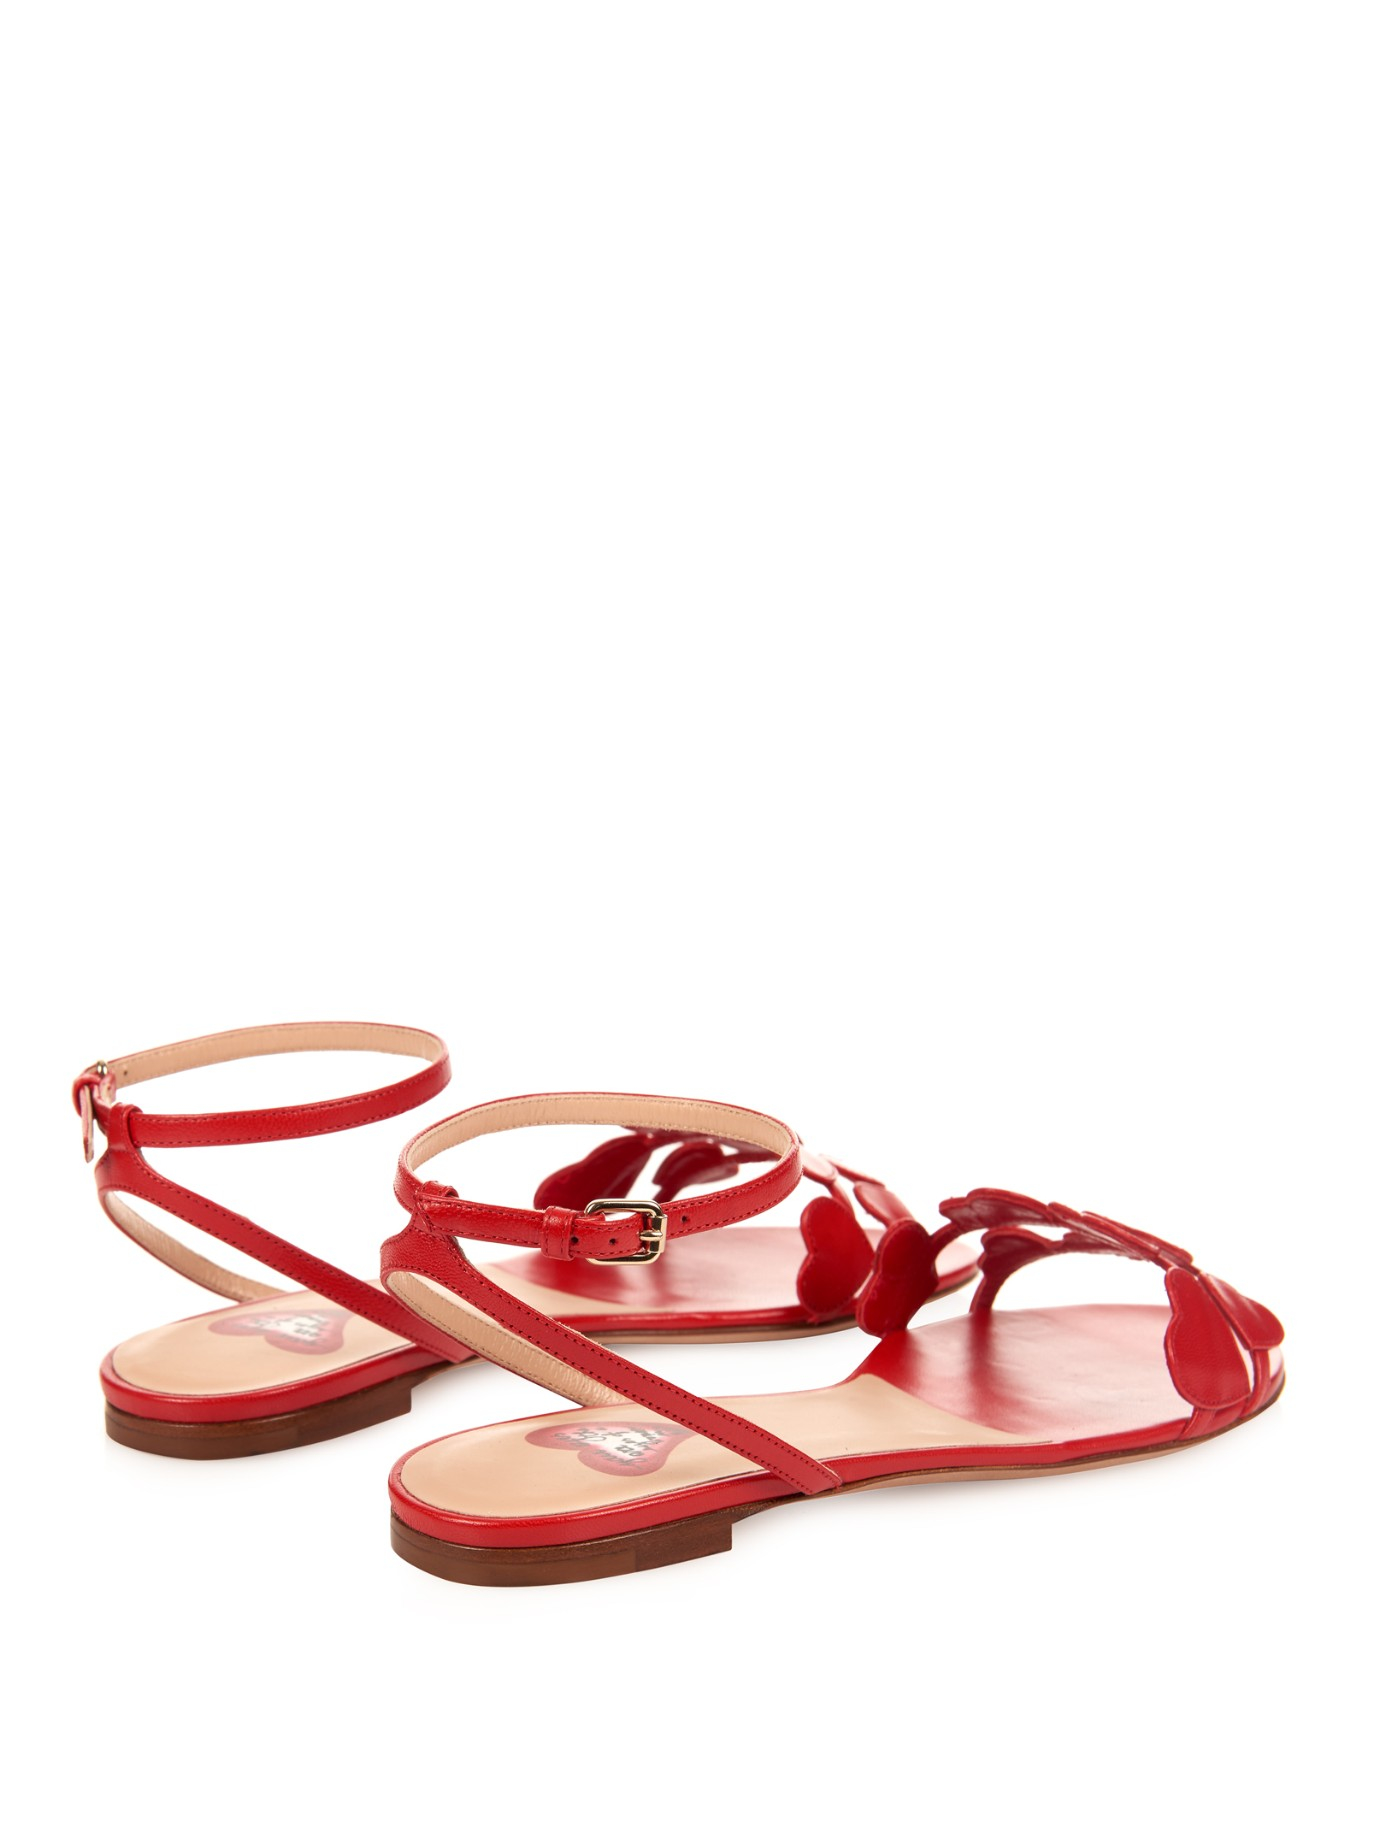 feb77d5e4e4bc1 Lyst - Valentino L Amour Leather Flat Sandals in Red